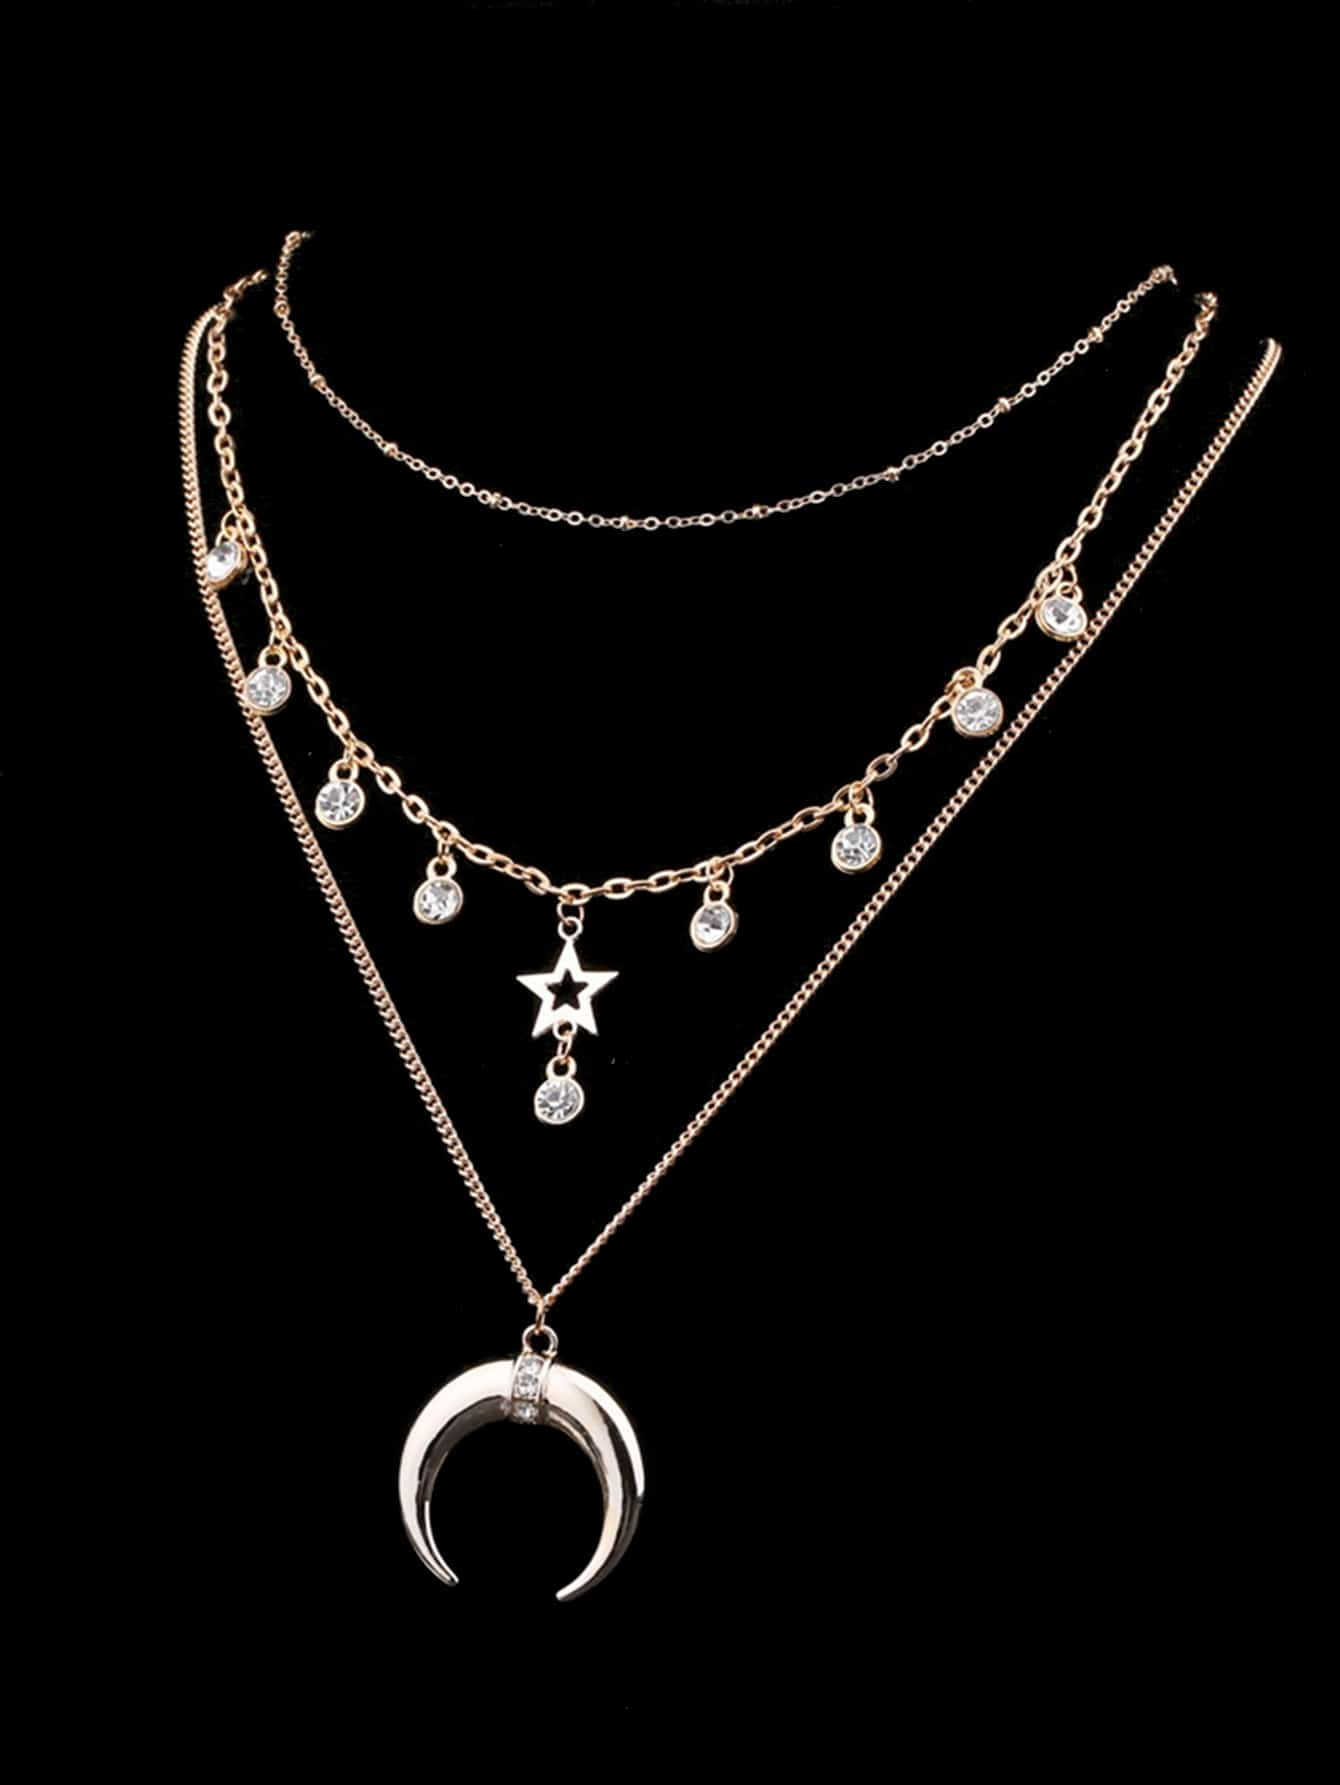 Moon & Star Pendant Layered Chain Necklace